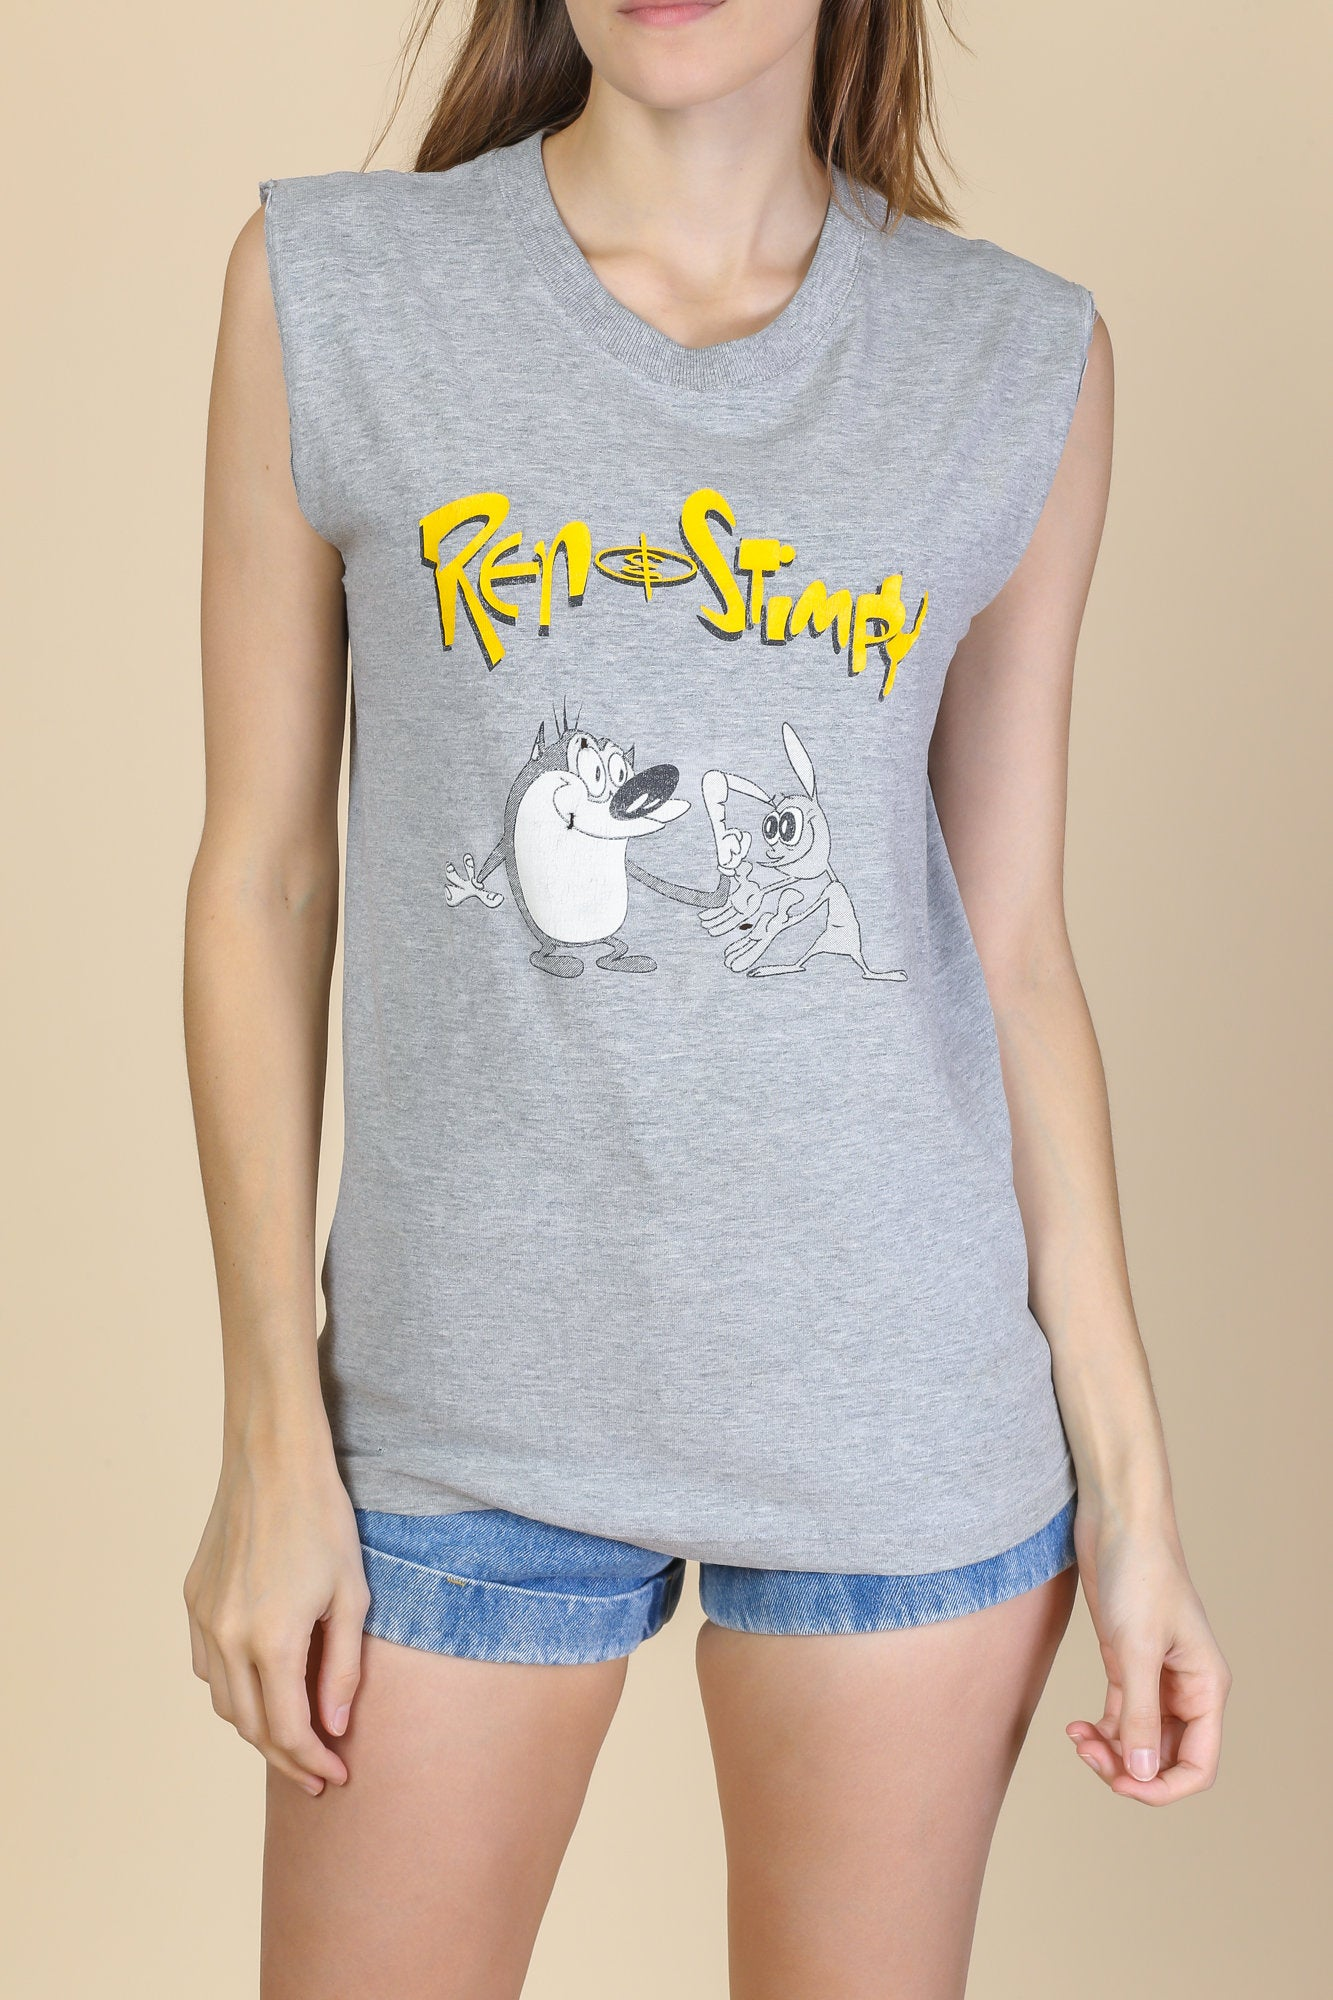 90s Ren & Stimpy Sleeveless Shirt - Small